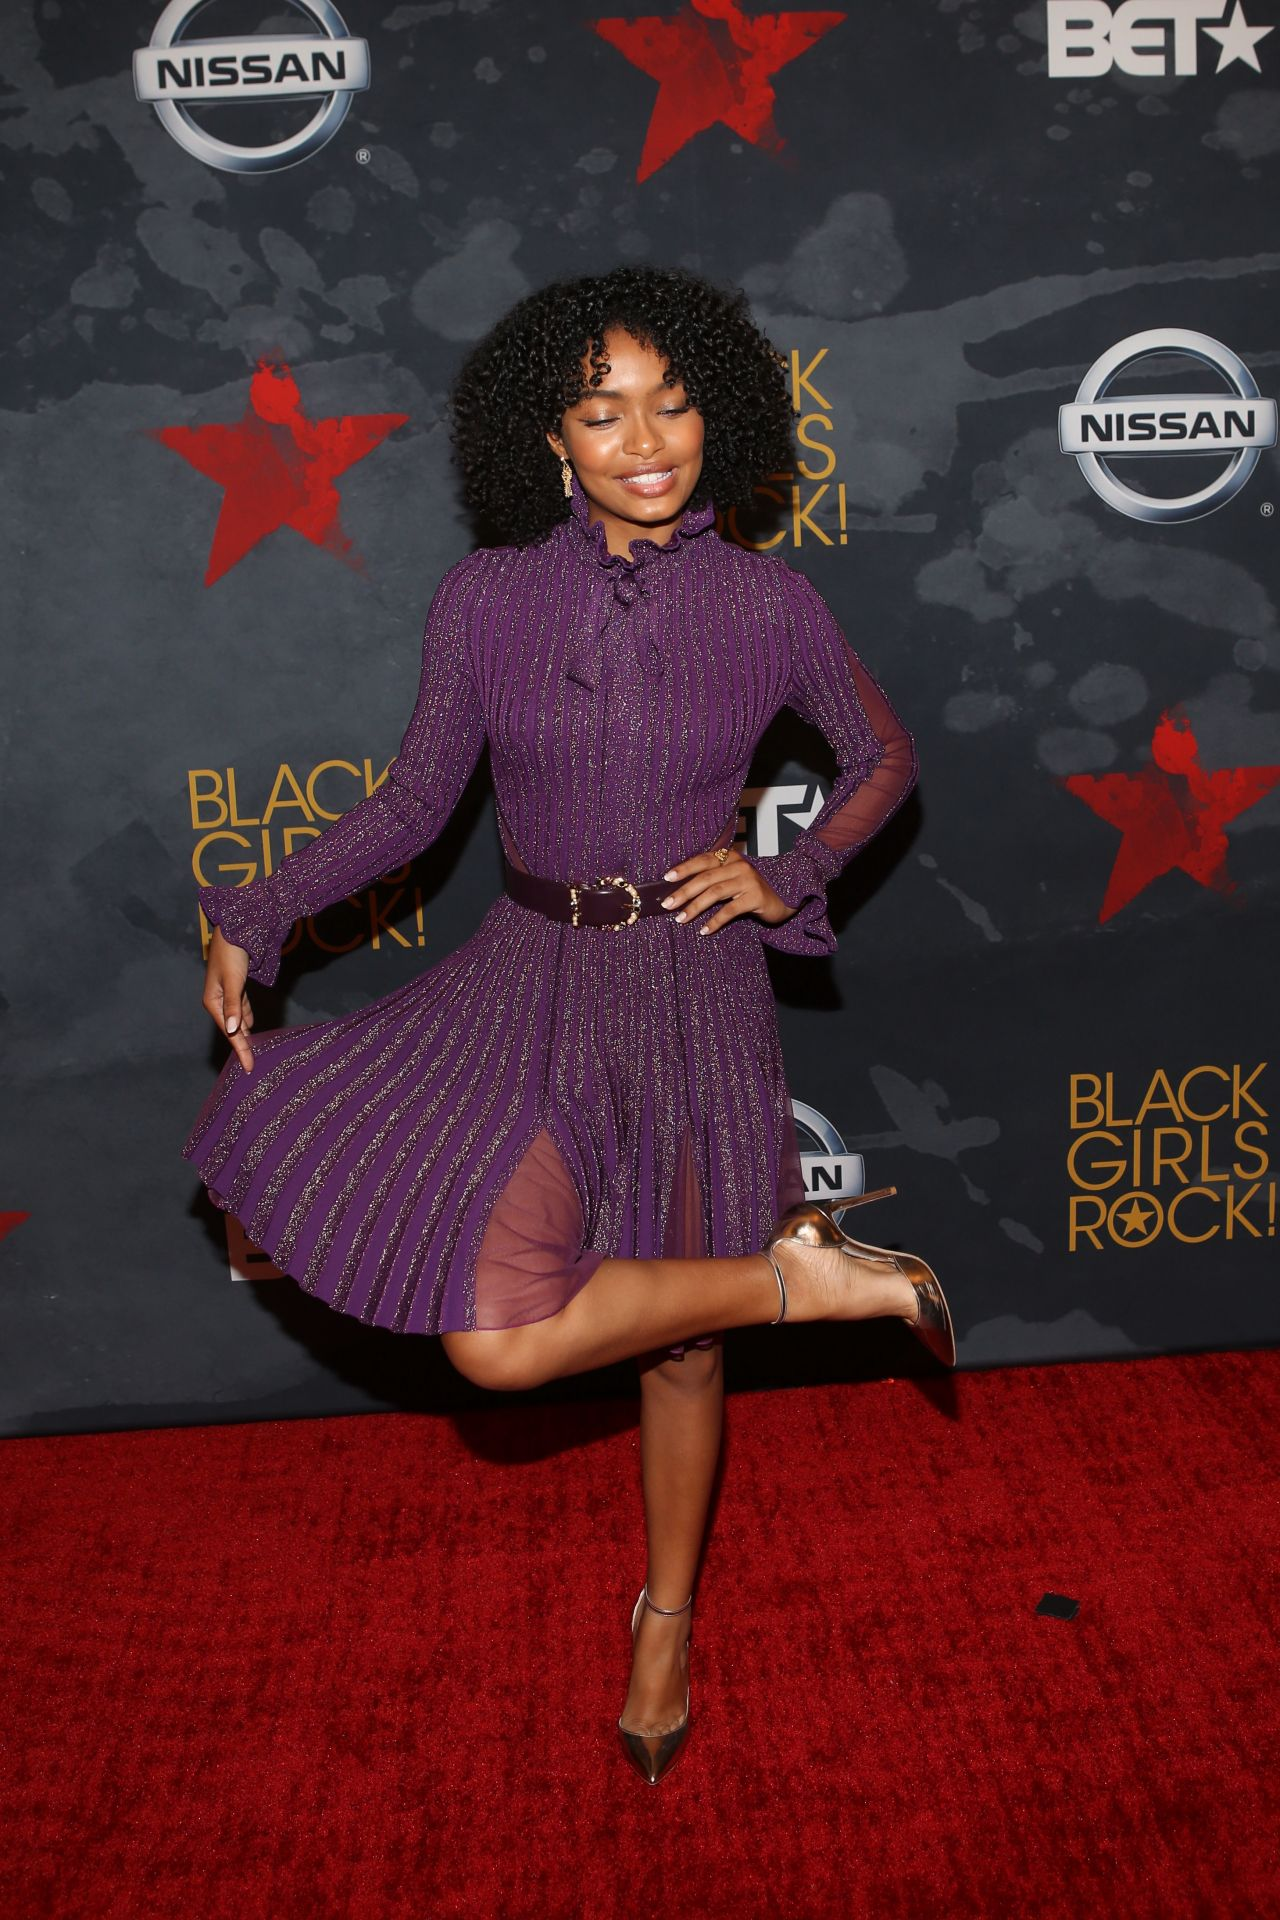 Yara Shahidi - Bet Black Girls Rock In Newark 08052017-5349